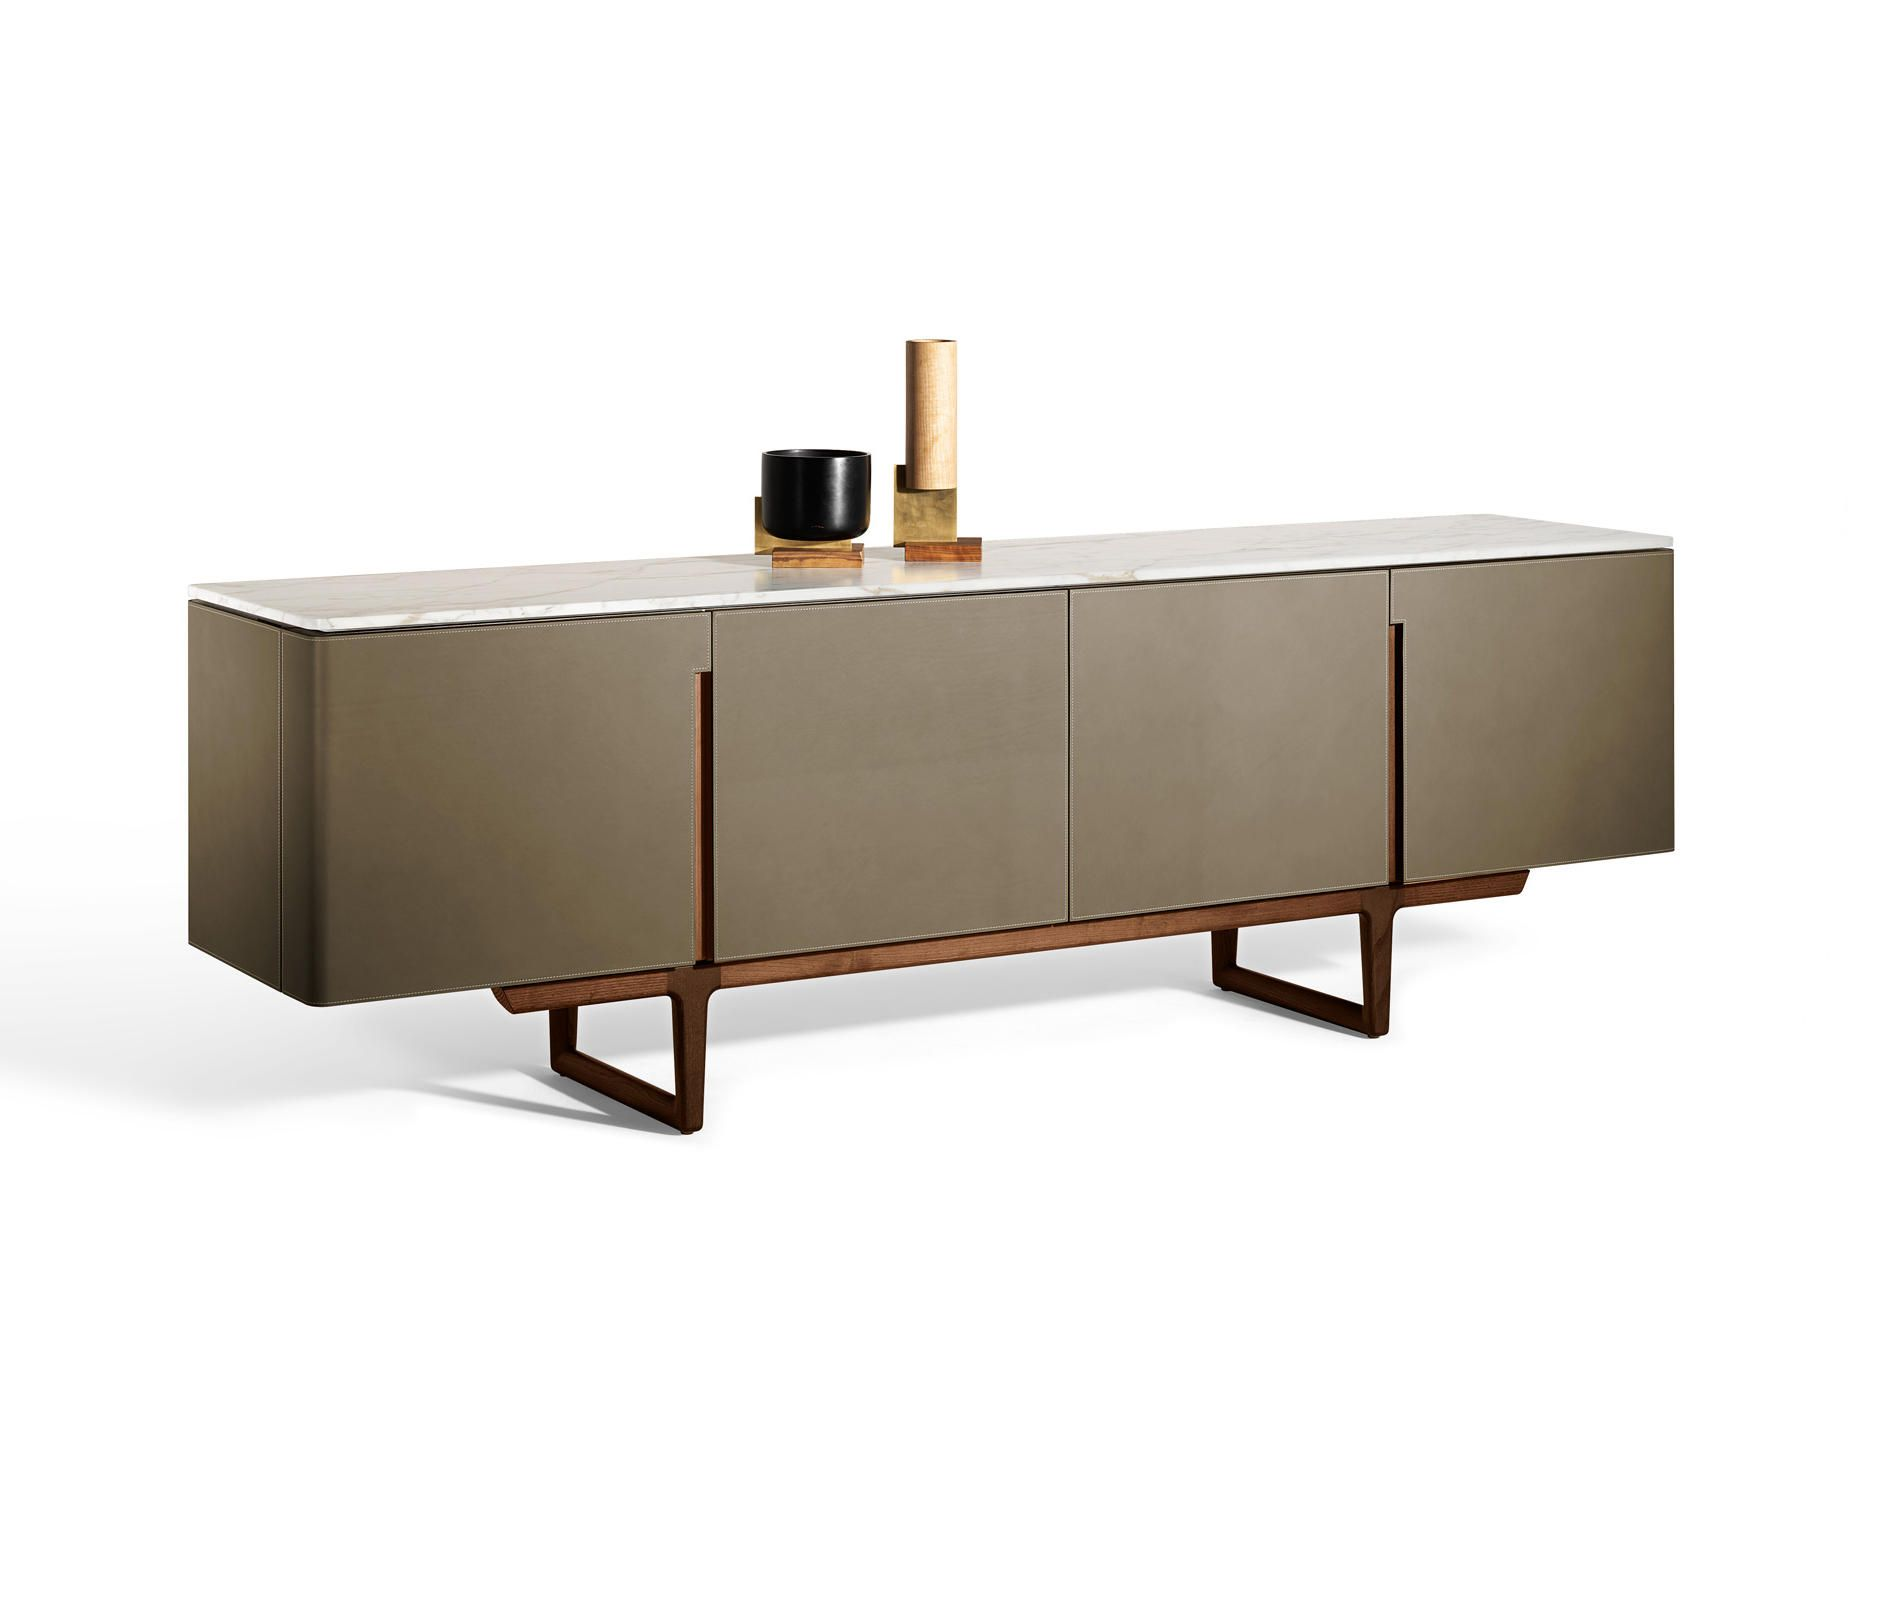 Fidelio Designer Sideboards From Poltrona Frau All Information High Resolution Images Cads Catalogues Contemporary Sideboard Low Cabinet Furniture